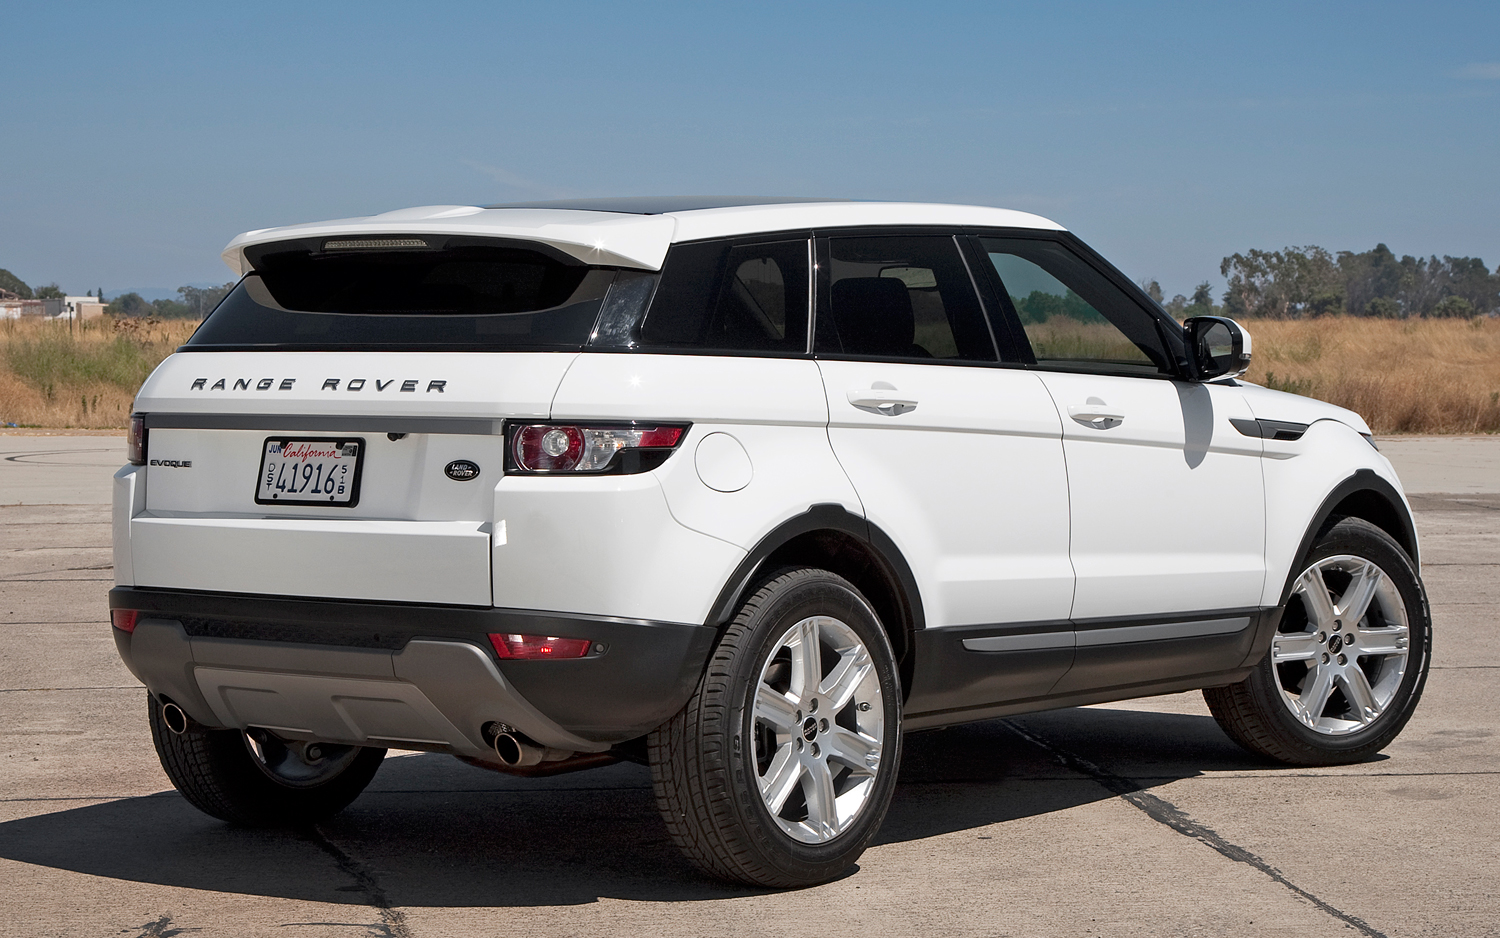 Land Rover Range Rover Evoque 5 door rear view Photo Gallery SUV of the Year